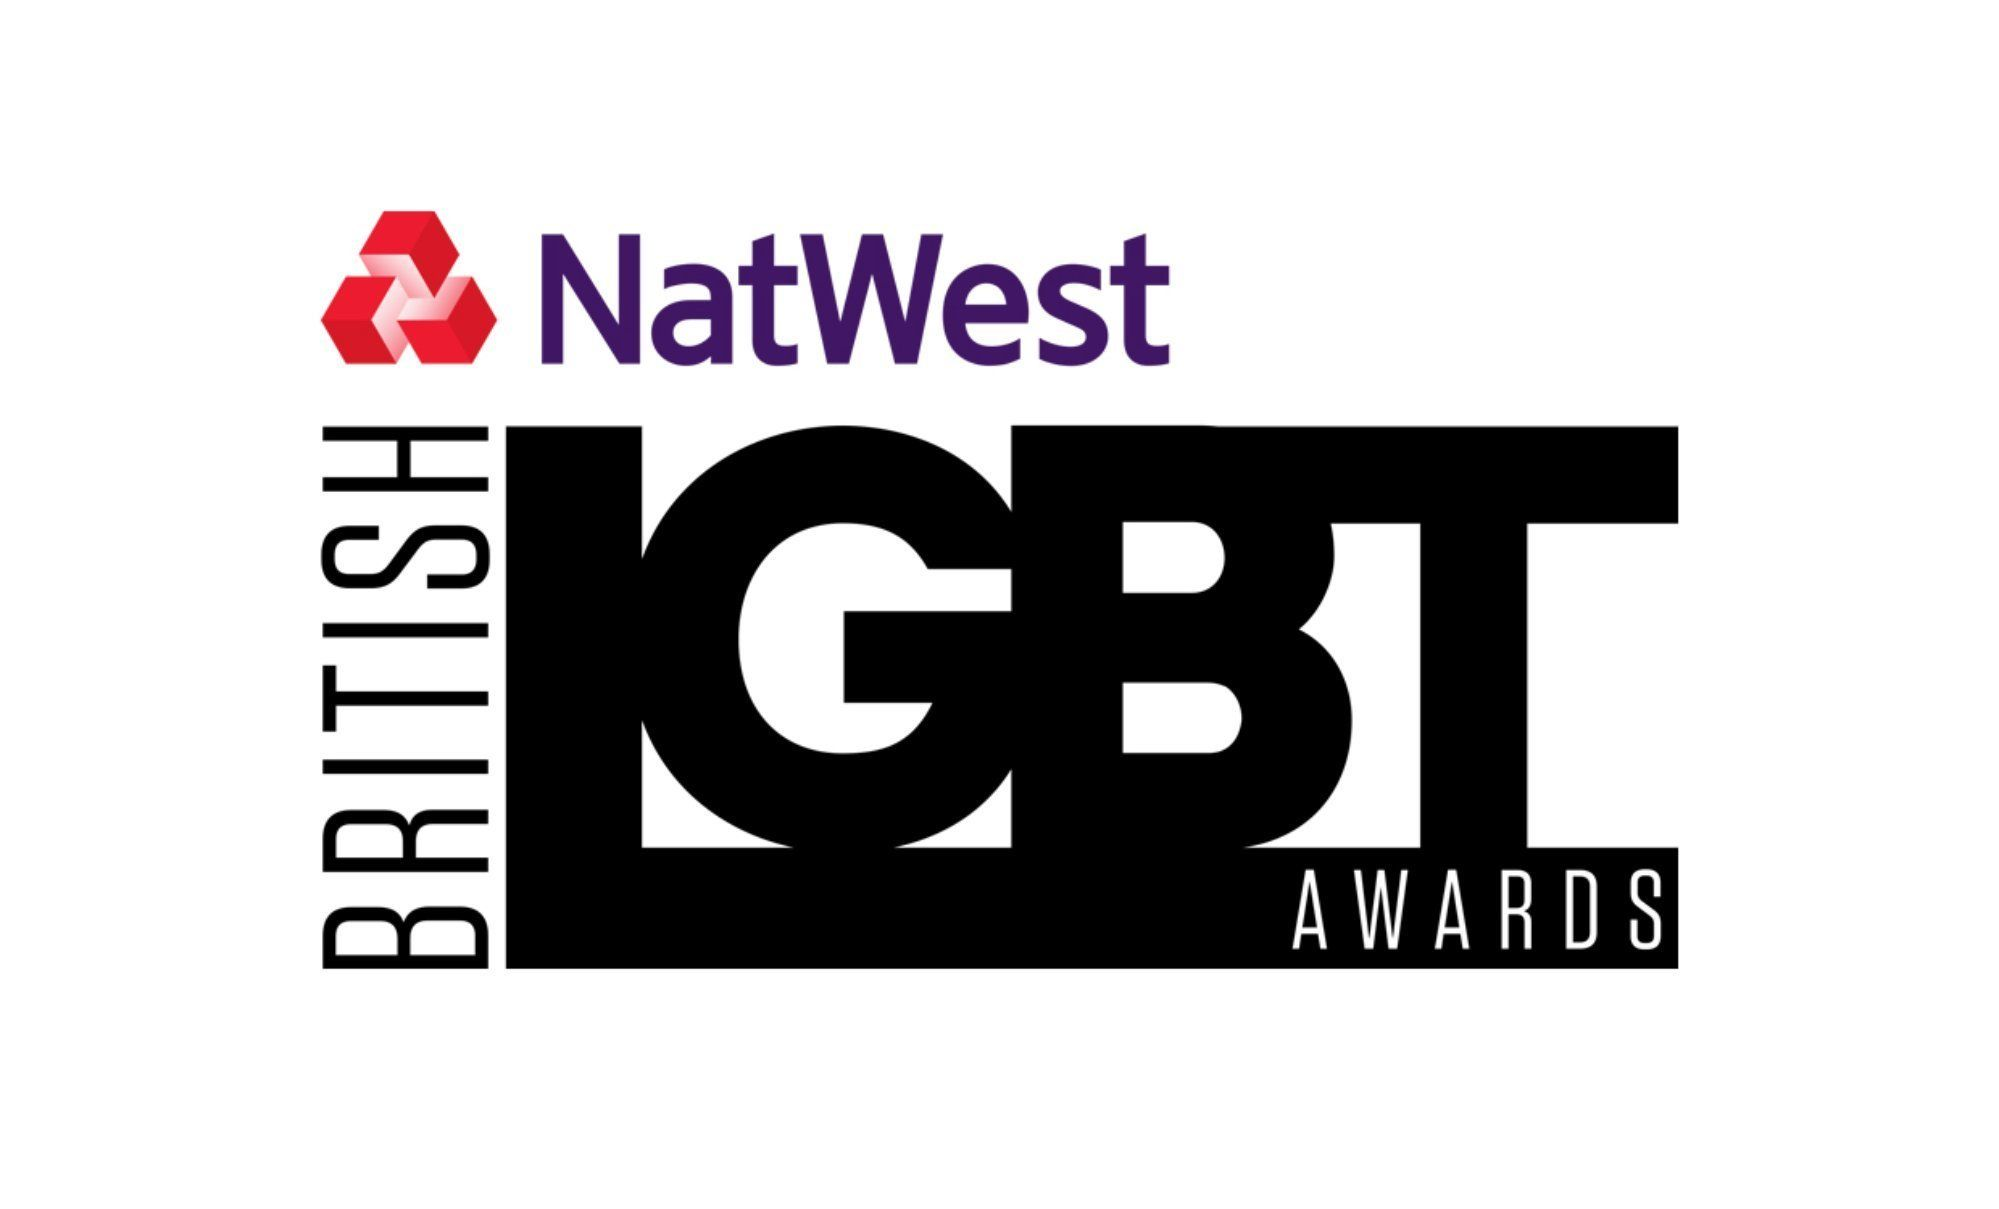 Voting For The British LGBT Awards 2018 Is Now